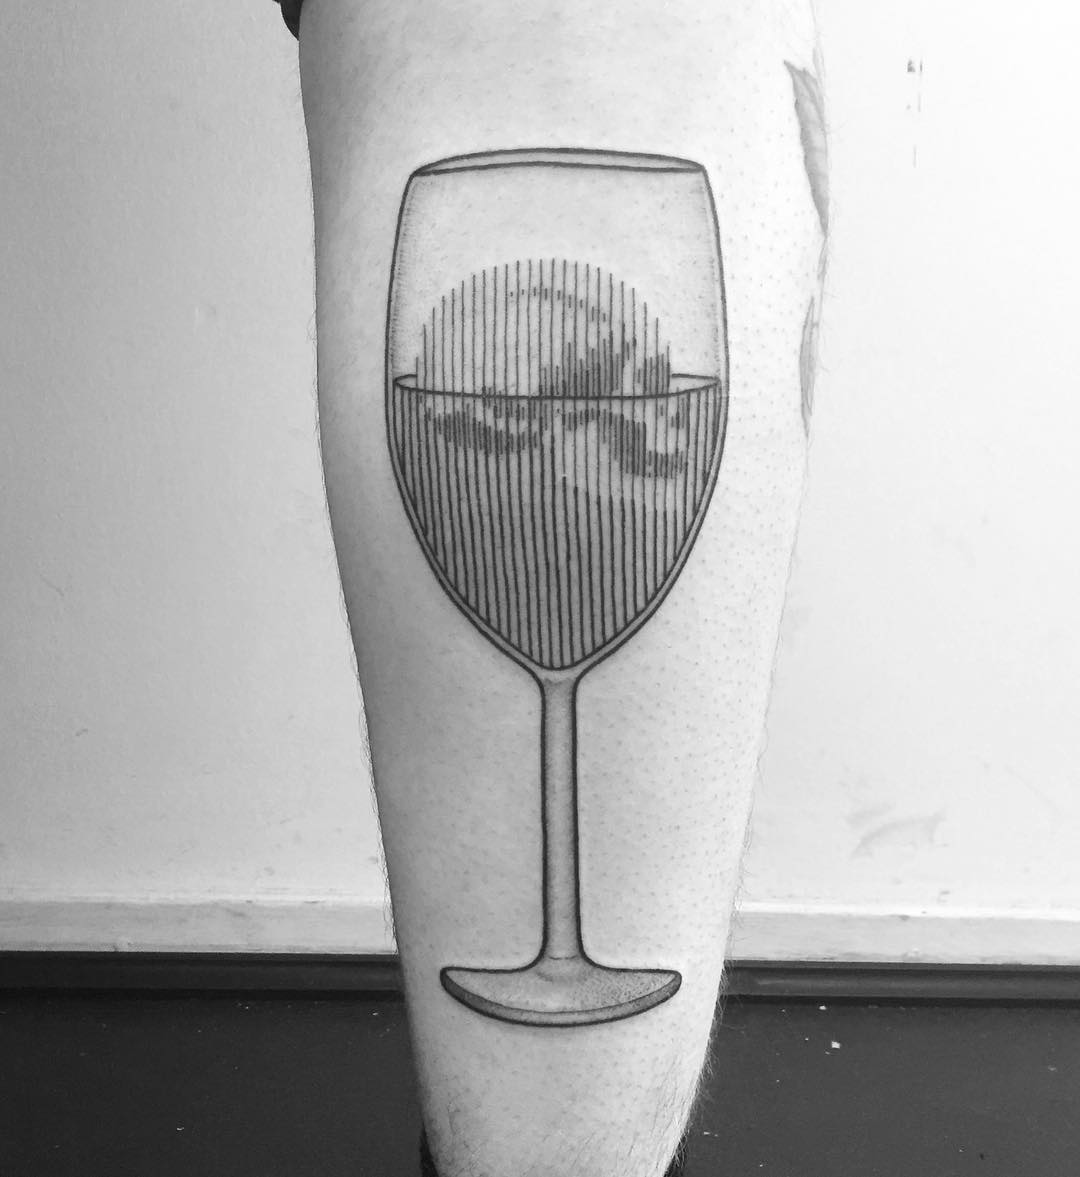 Drink your trouble tattoo by Francesco Rossetti